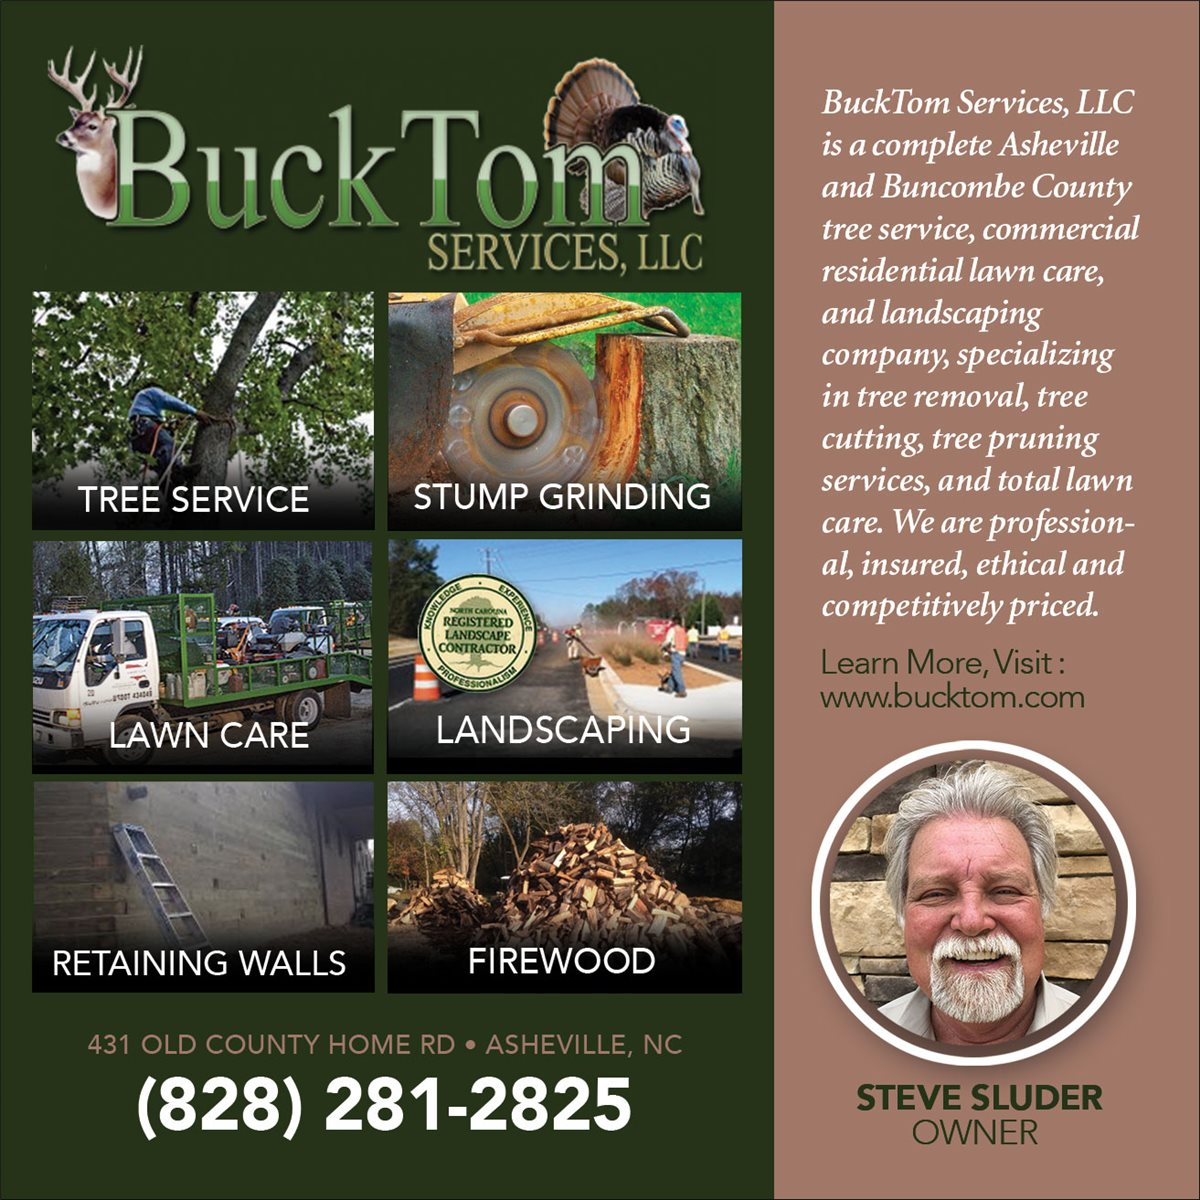 BuckTom Services, LLC